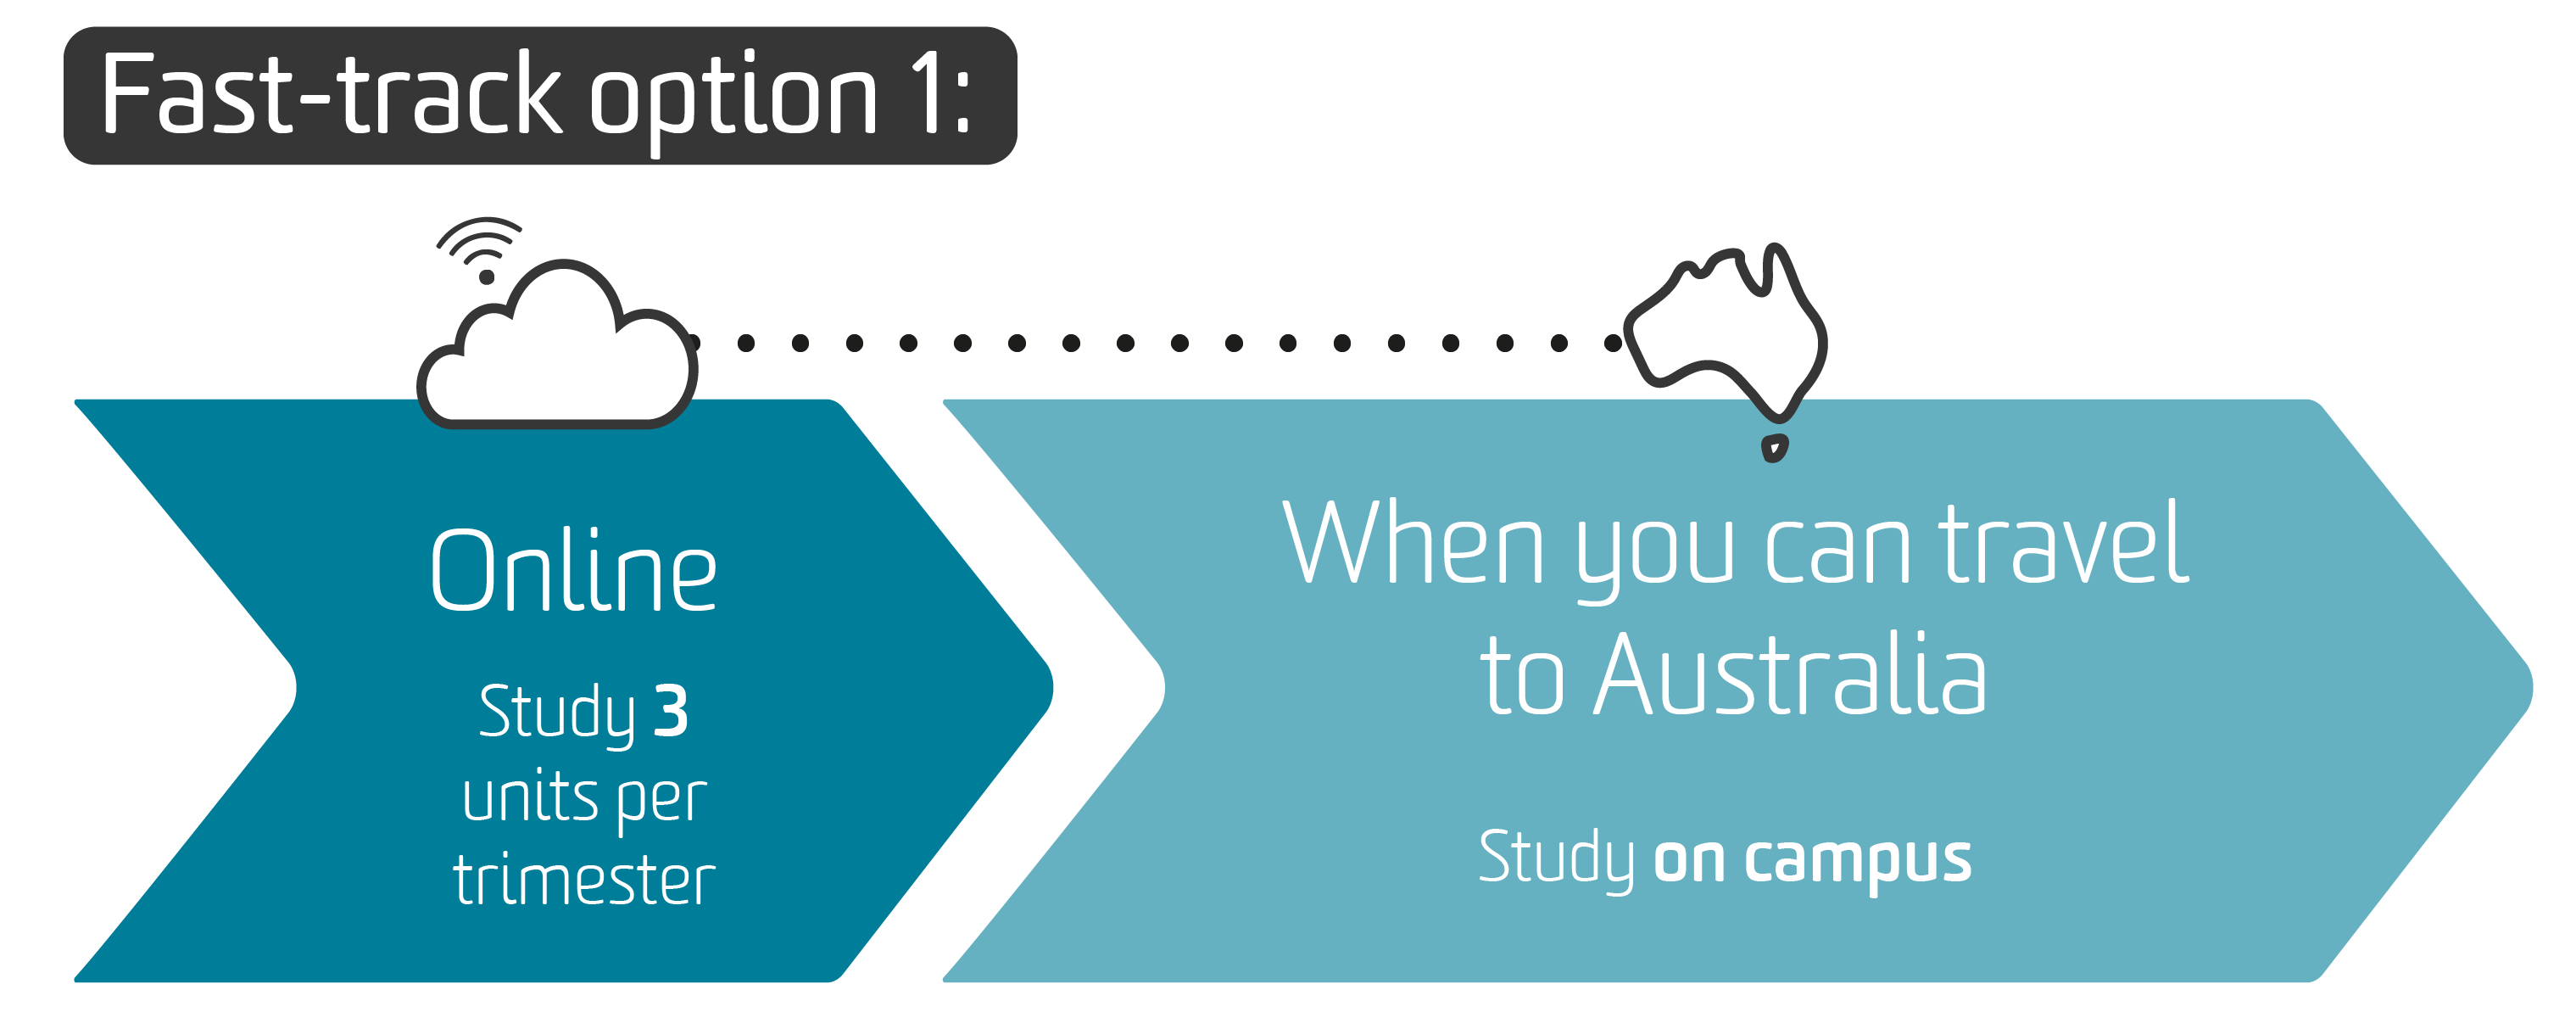 The diagram shows the Fast-track option 1: study 3 units online. When you can travel to Australia, study on campus.